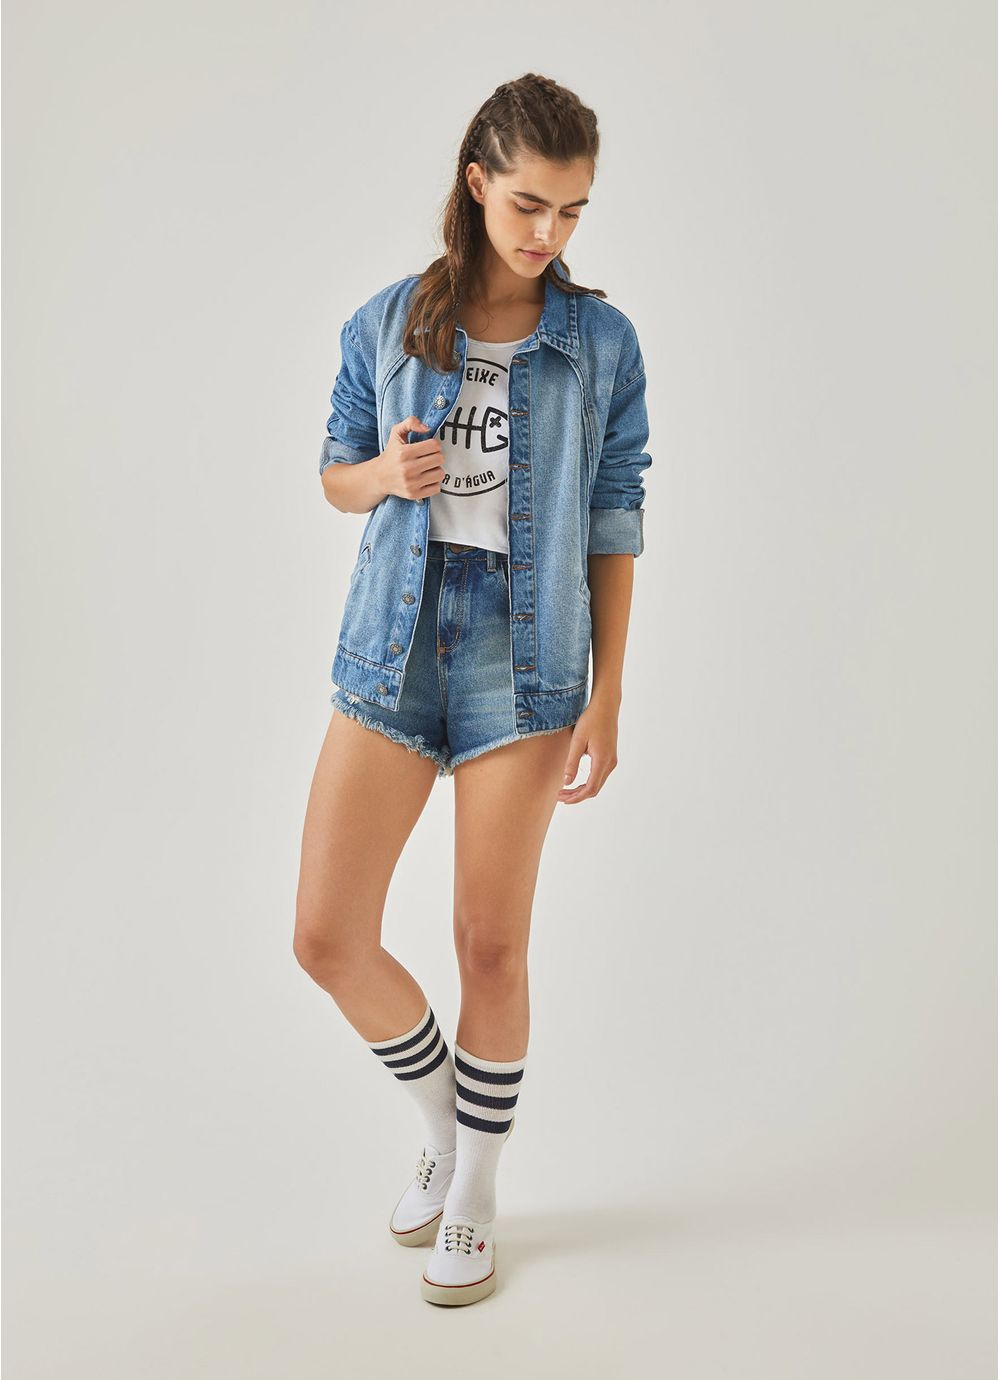 f67473c83f Jaqueta jeans anos 90 JEANS - Compre Online na Redley!